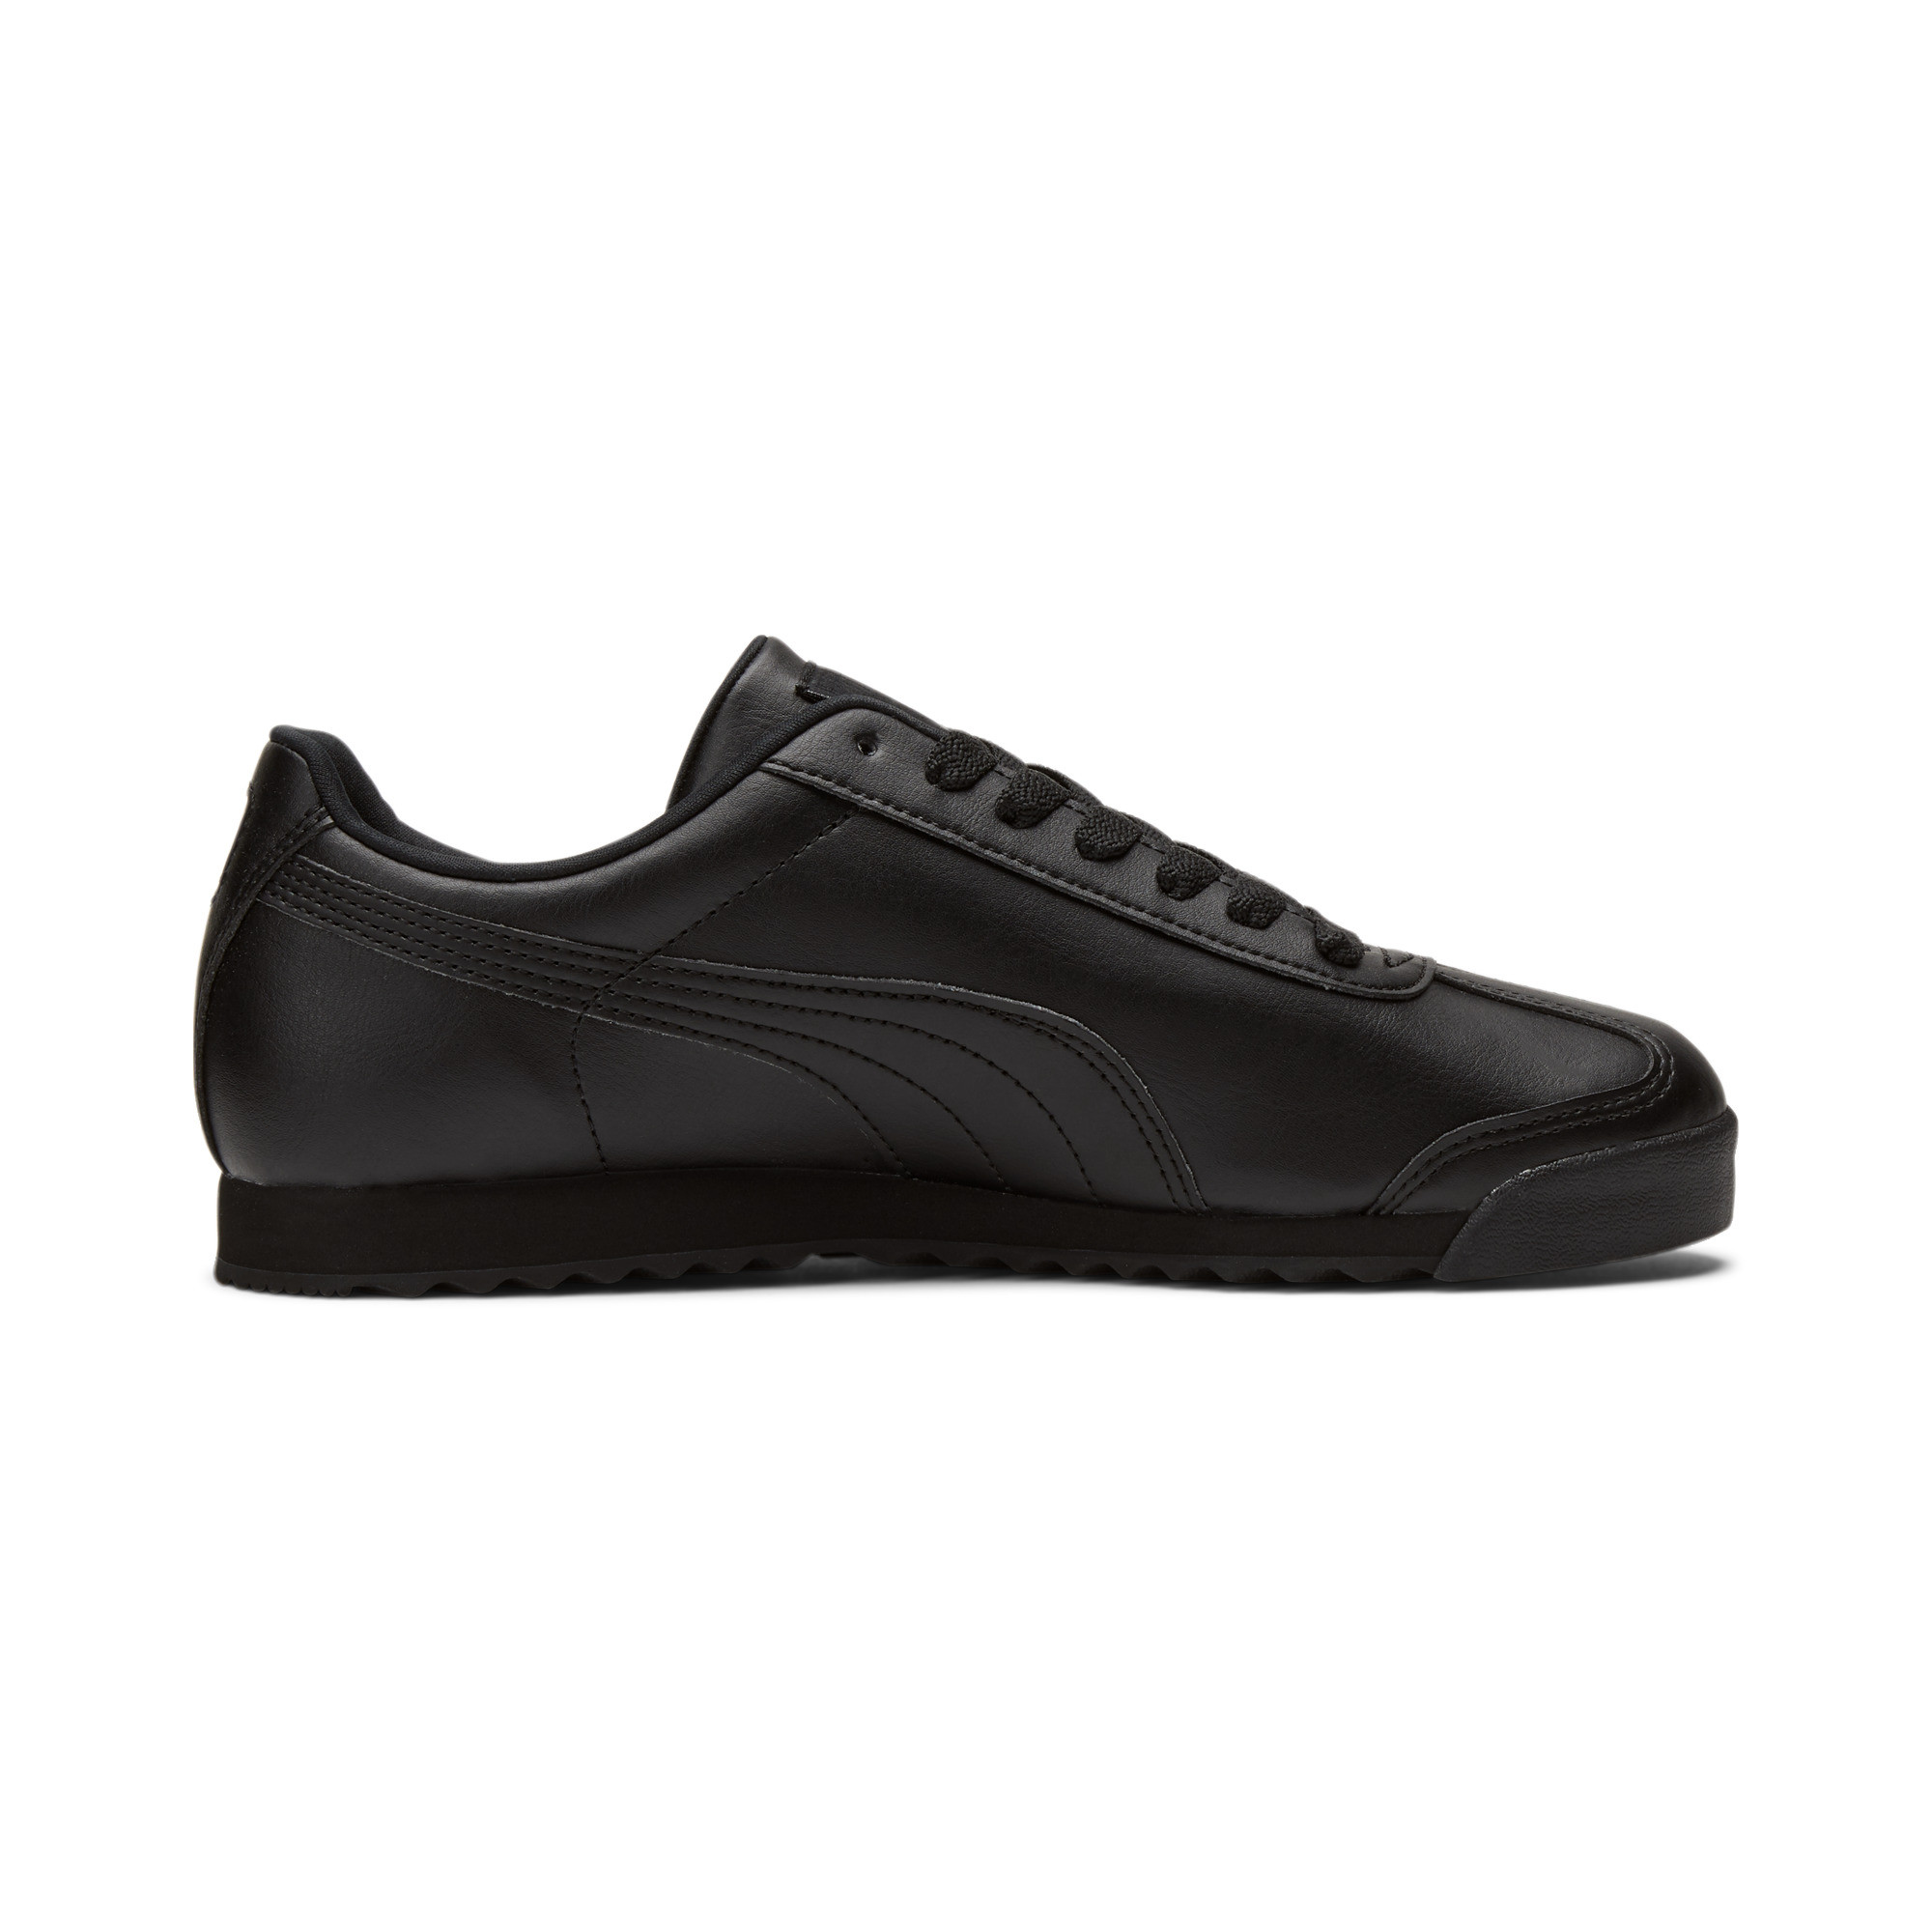 PUMA-Roma-Basic-Men-039-s-Sneakers-Men-Shoe-Sport-Shoe thumbnail 6